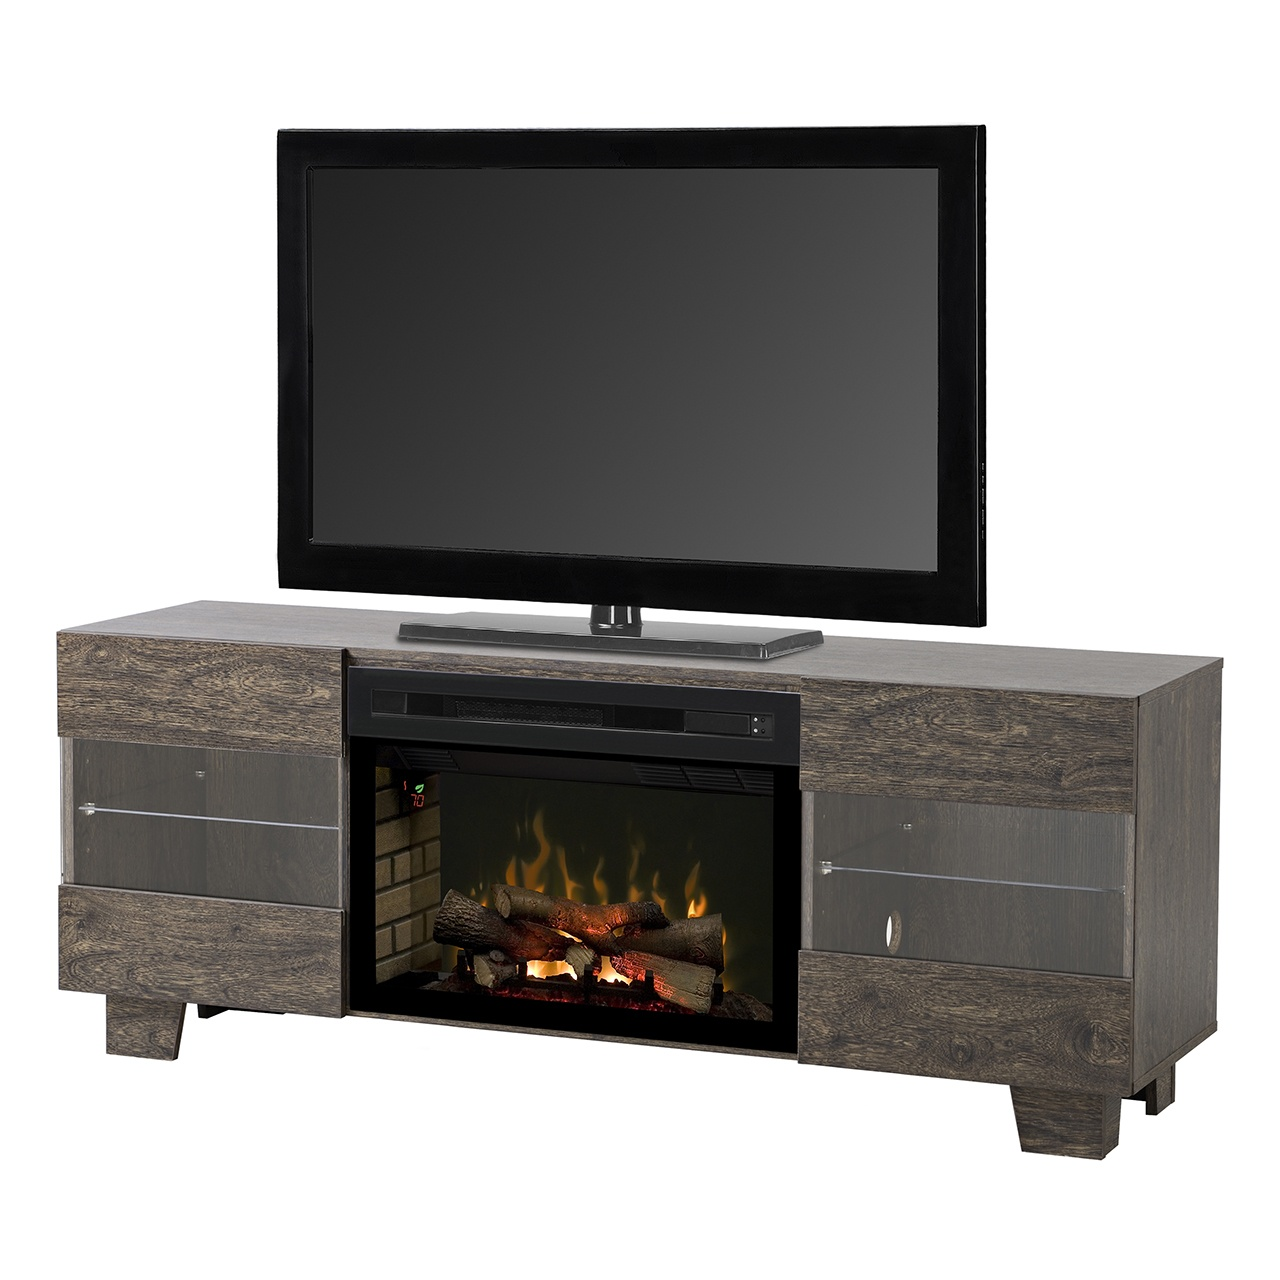 dimplex max gds25ld 1651eb electric fireplace media